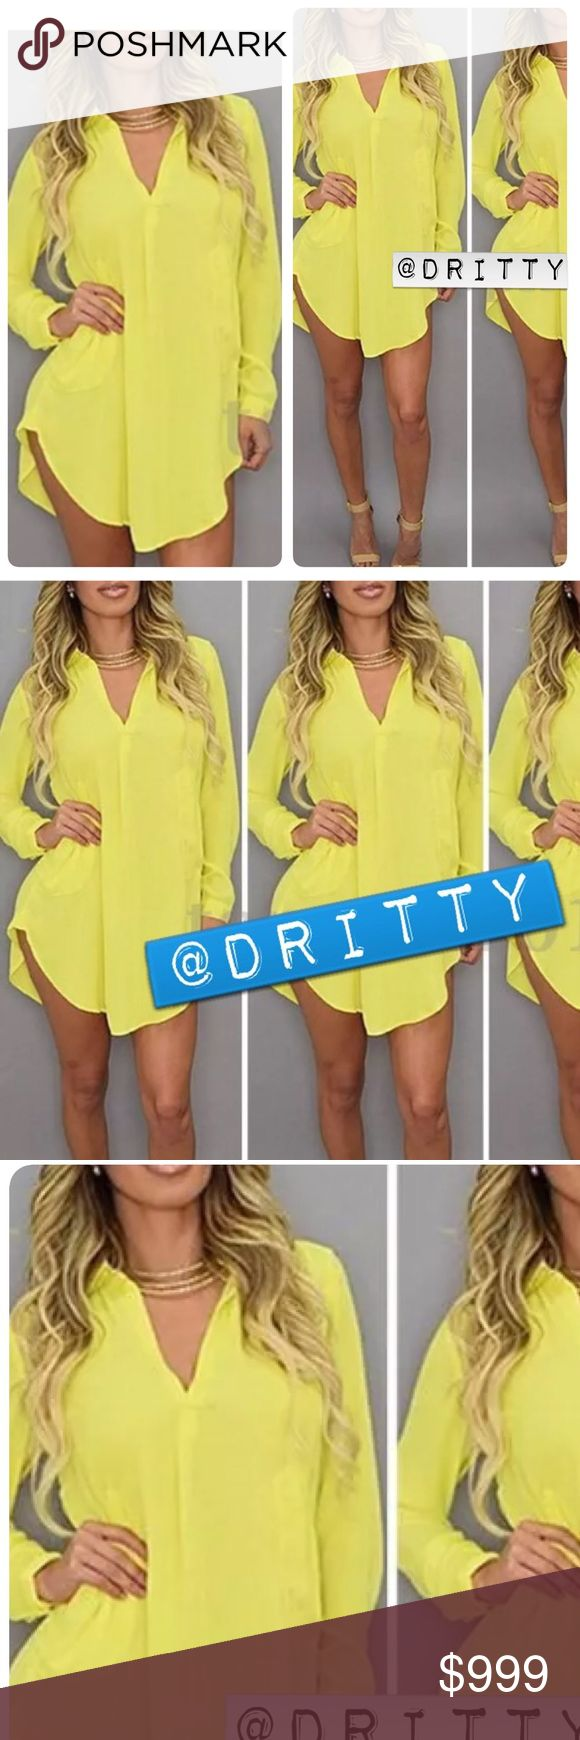 Coming Soon! Beautiful Canary Mini Dress! Sext, Casual, and the color screams fashion! Rock this baby with some tan/khaki heels to complete your look! Dresses Mini